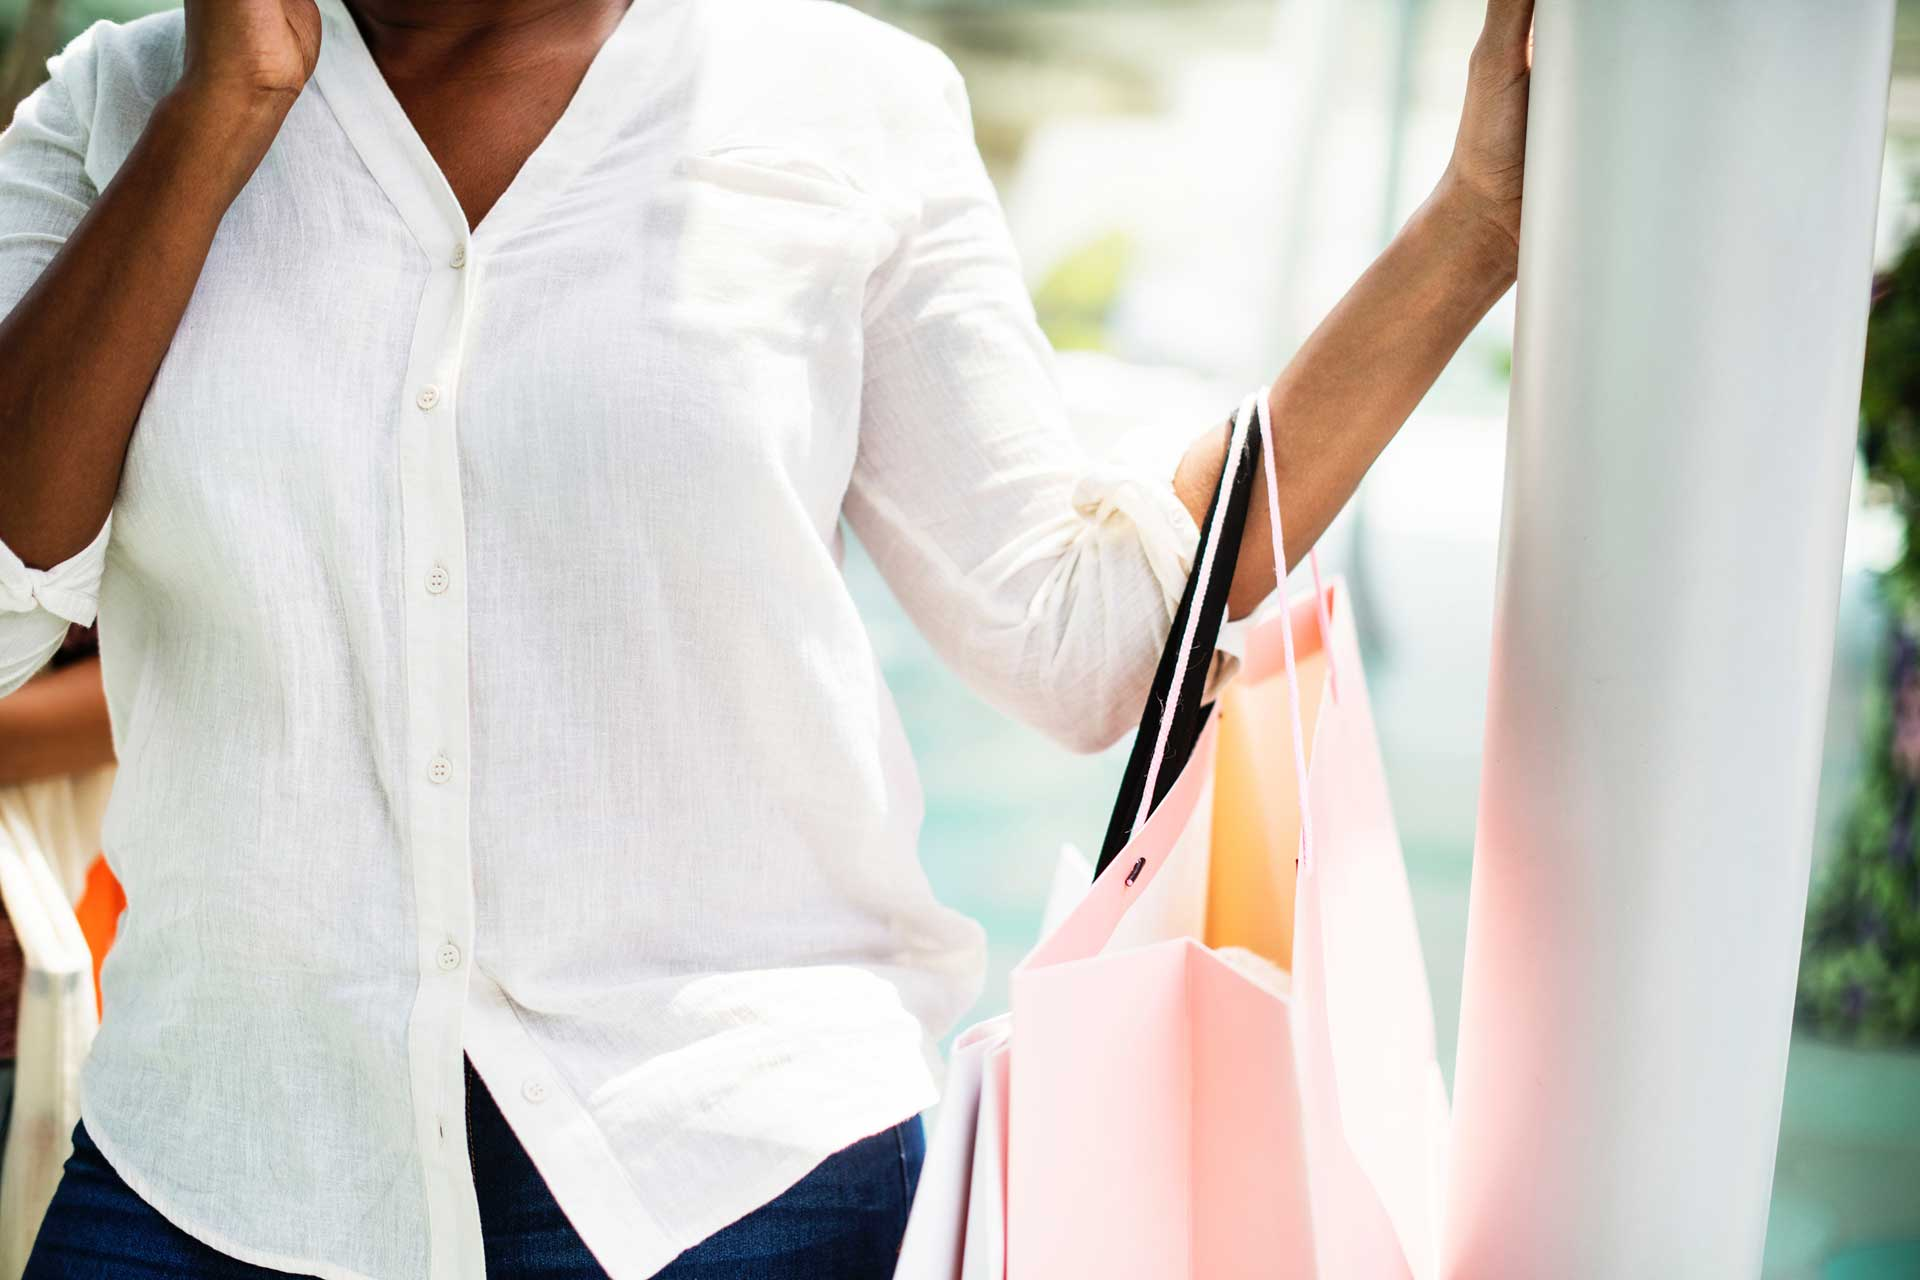 woman in white button-up long-sleeved shirt standing holding pink paper bag